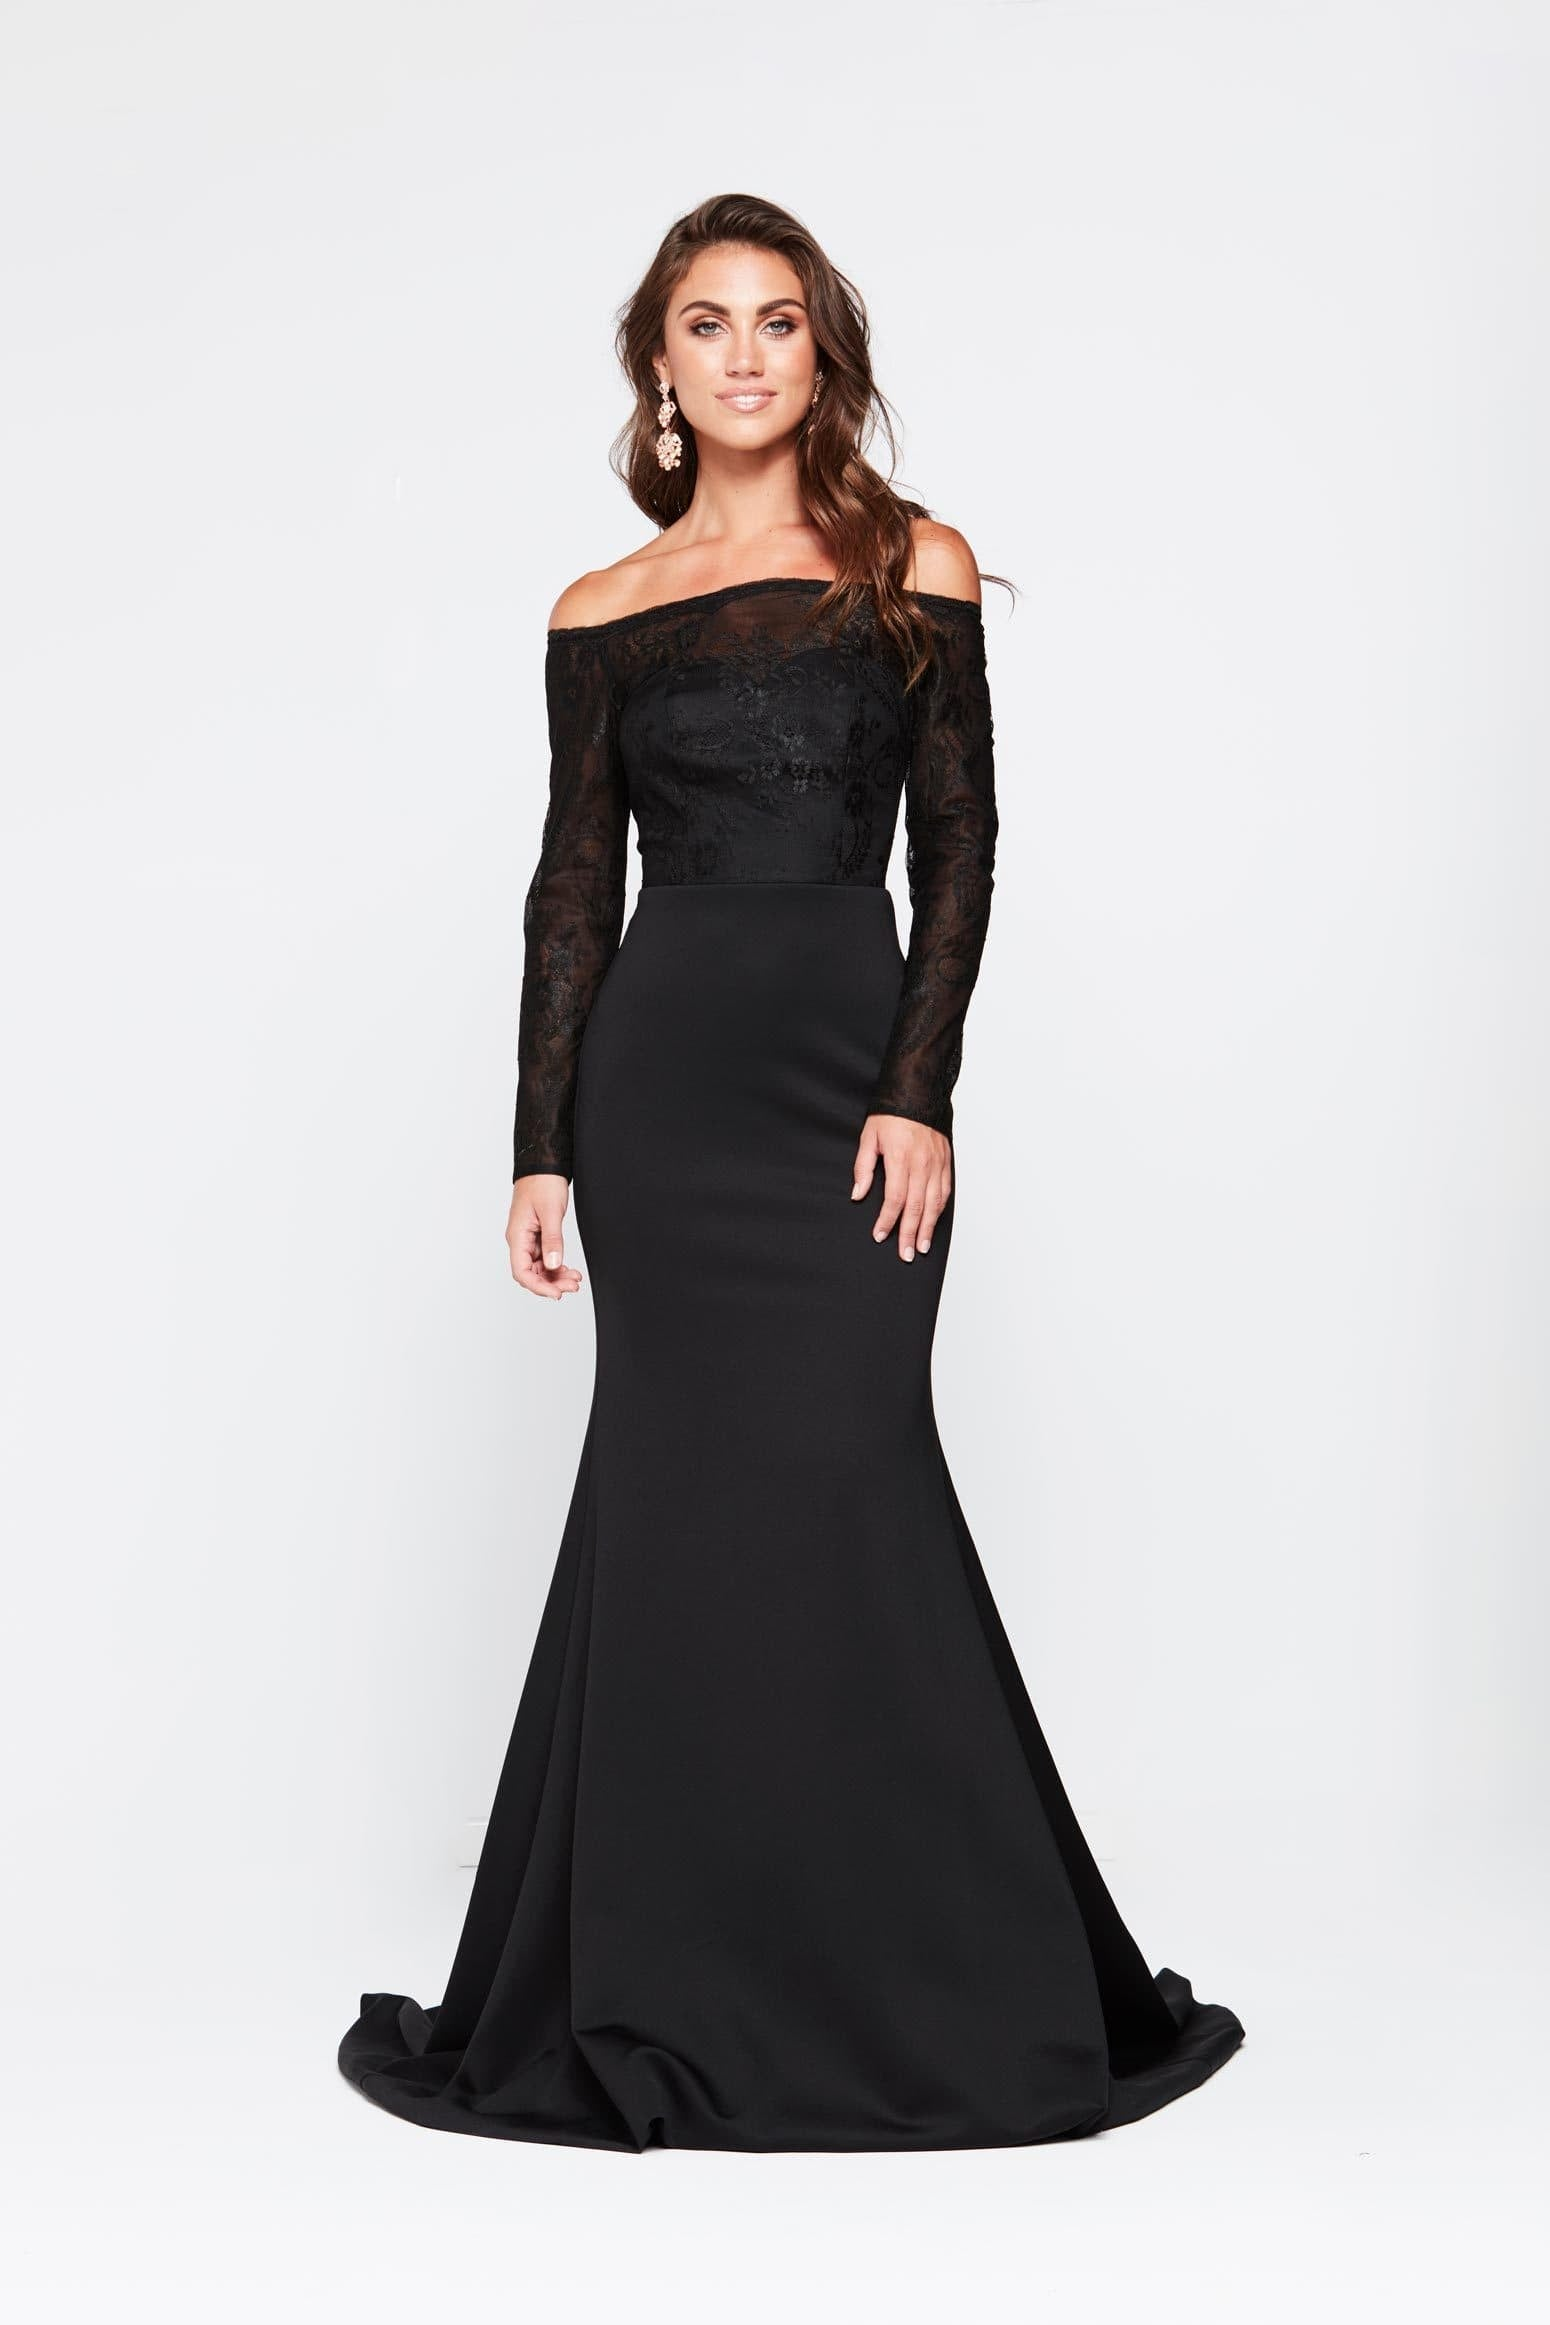 5dcc3b05215 A N Gina - Black Jersey Lace Gown with Off Shoulder Long Sleeves ...